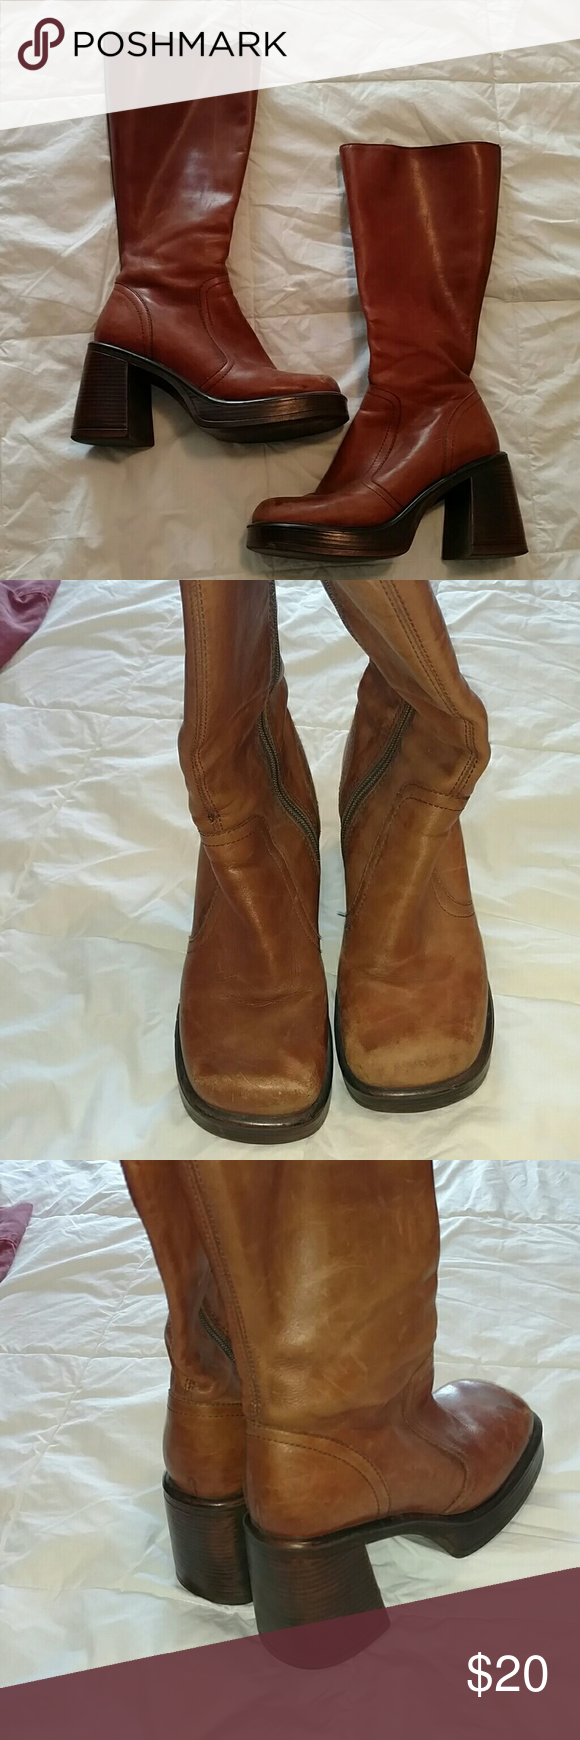 """Vintage Steve Madden Boots Style name: Boxer. In excellent vintage condition. The top of one boot is fraying. Zipper, heel, and sole still in perfect condition. Hits at mid-calf. 1"""" platform, 4"""" block heel. Steve Madden Shoes"""